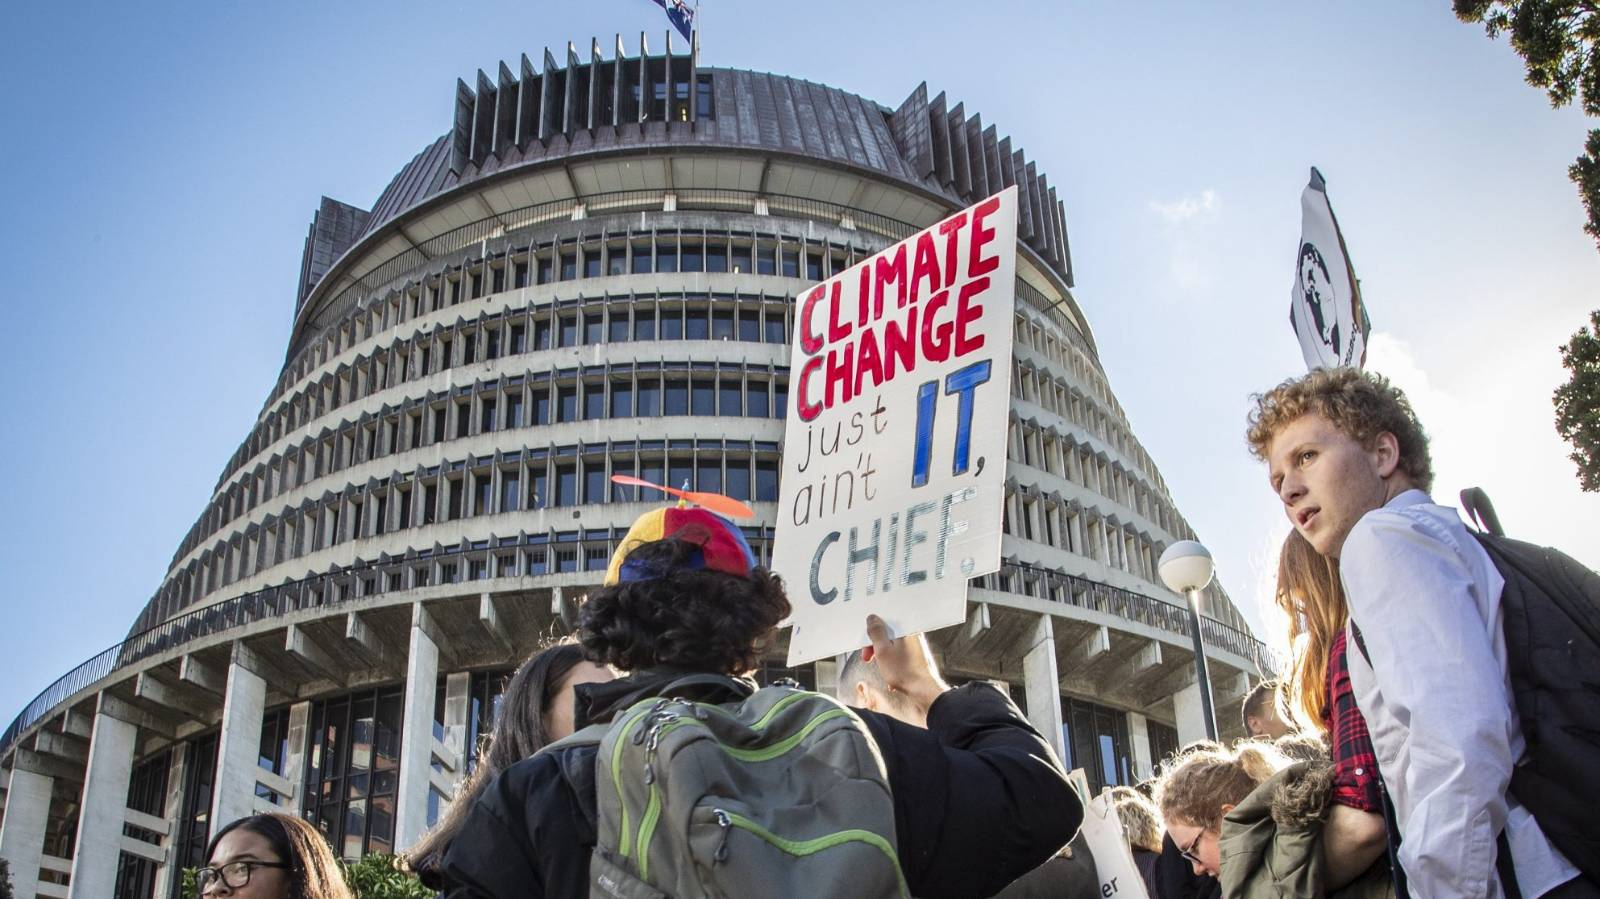 Climate emergency or not, New Zealand needs to start doing its share